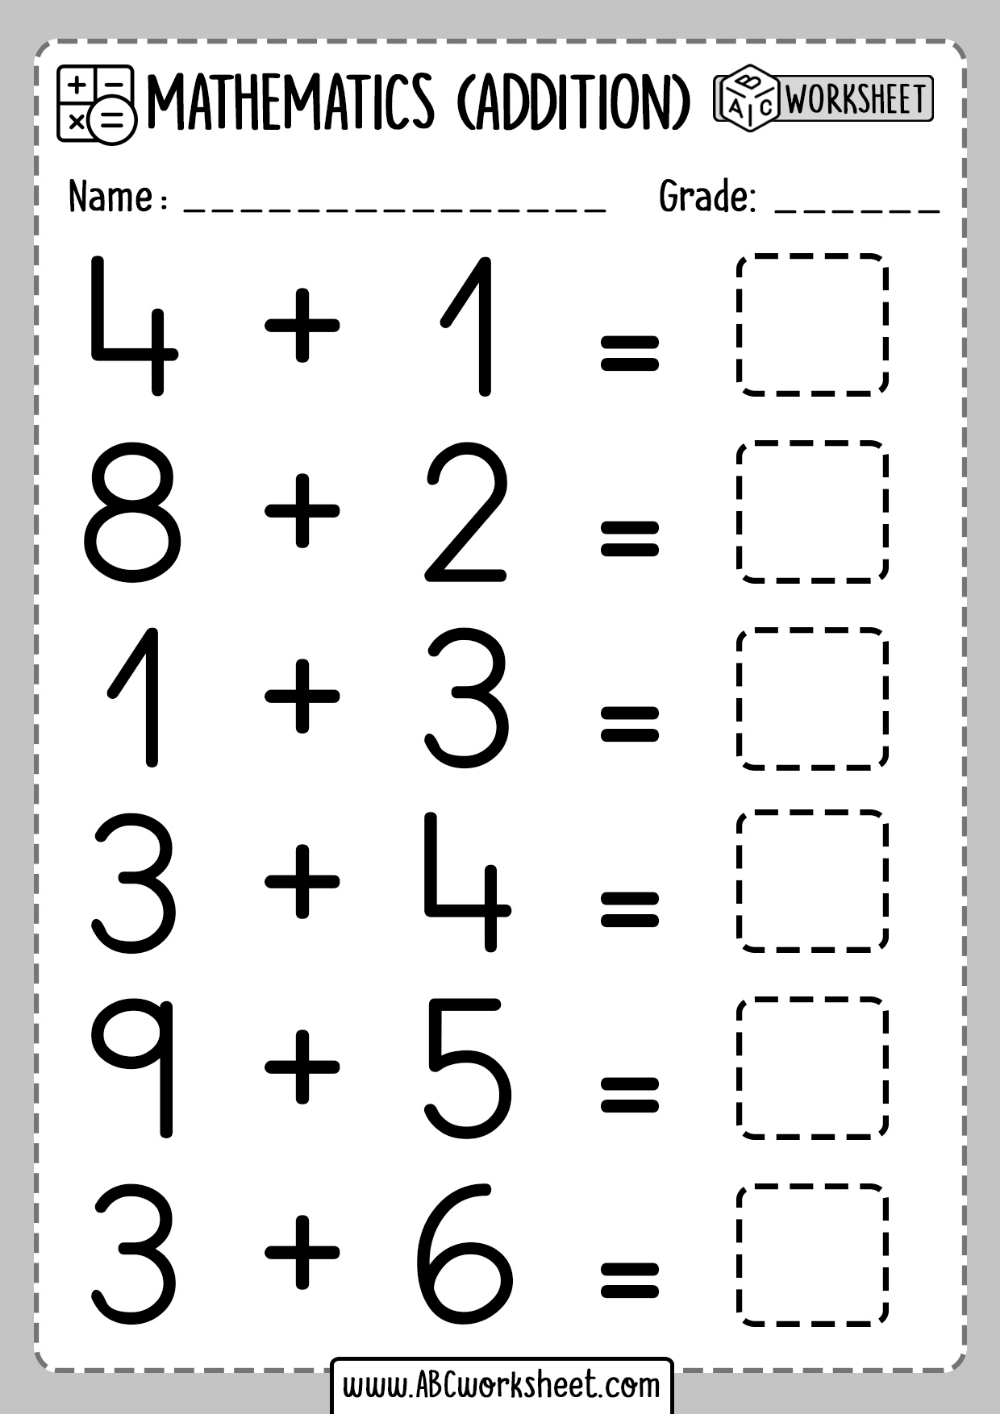 Printable Addition Activities For Kindergarten - Abc